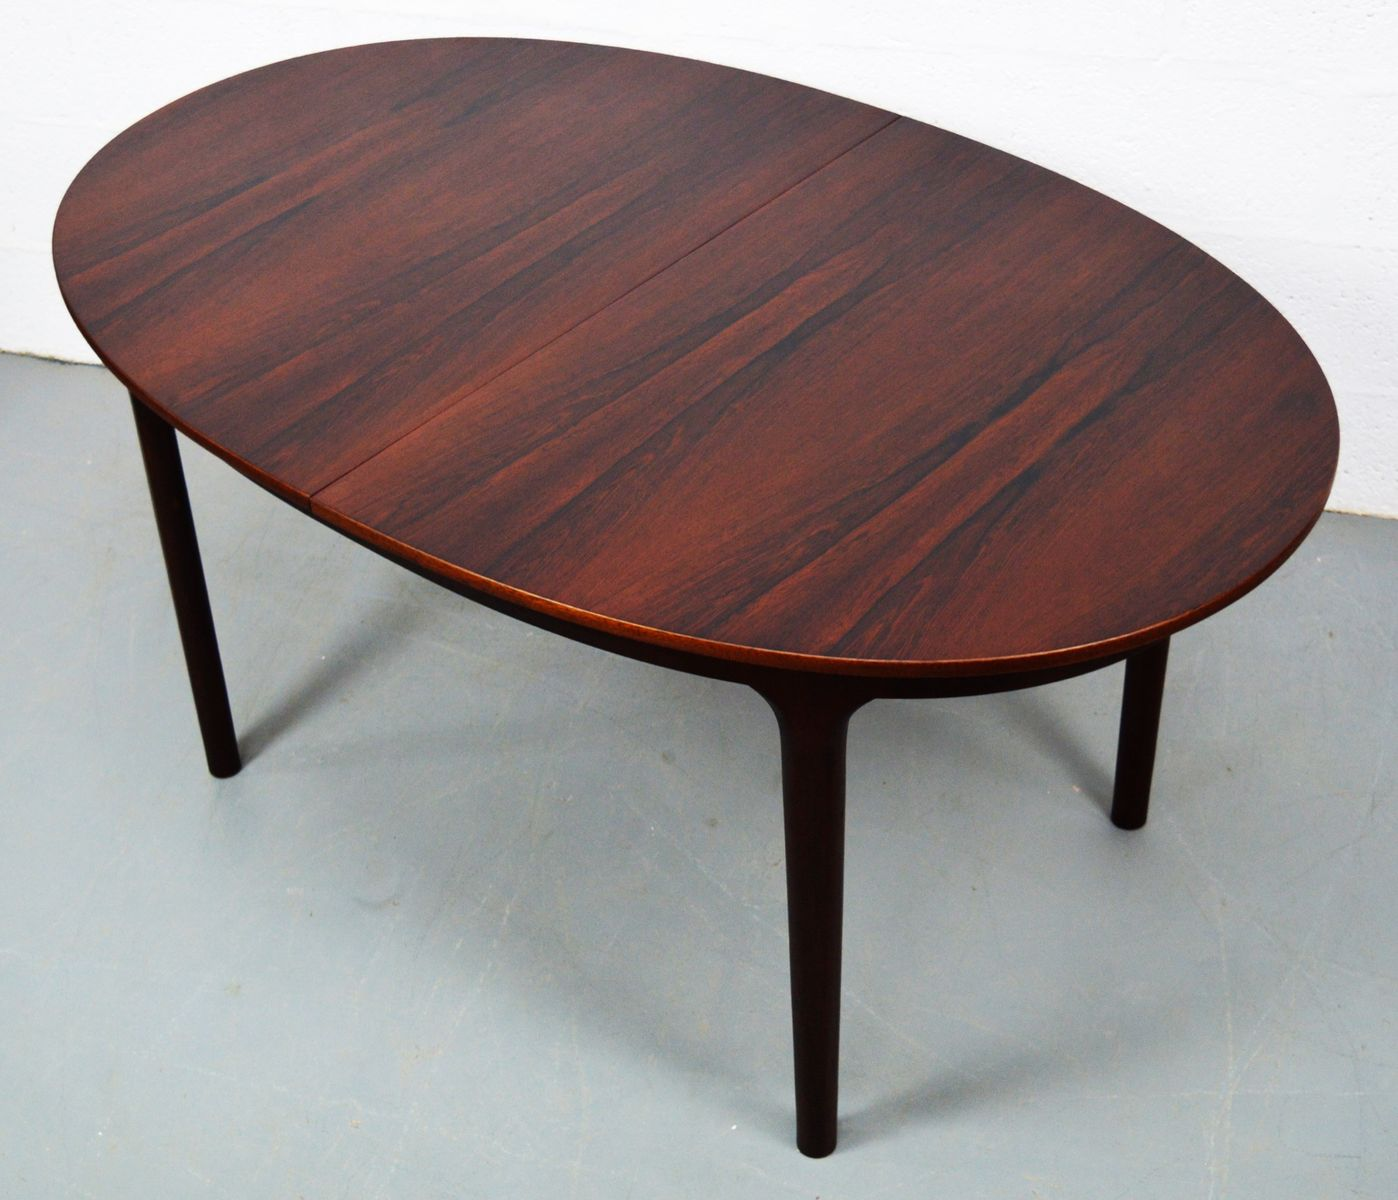 Table de salle manger ovale mid century rallonges en for Table salle a manger 3 rallonges